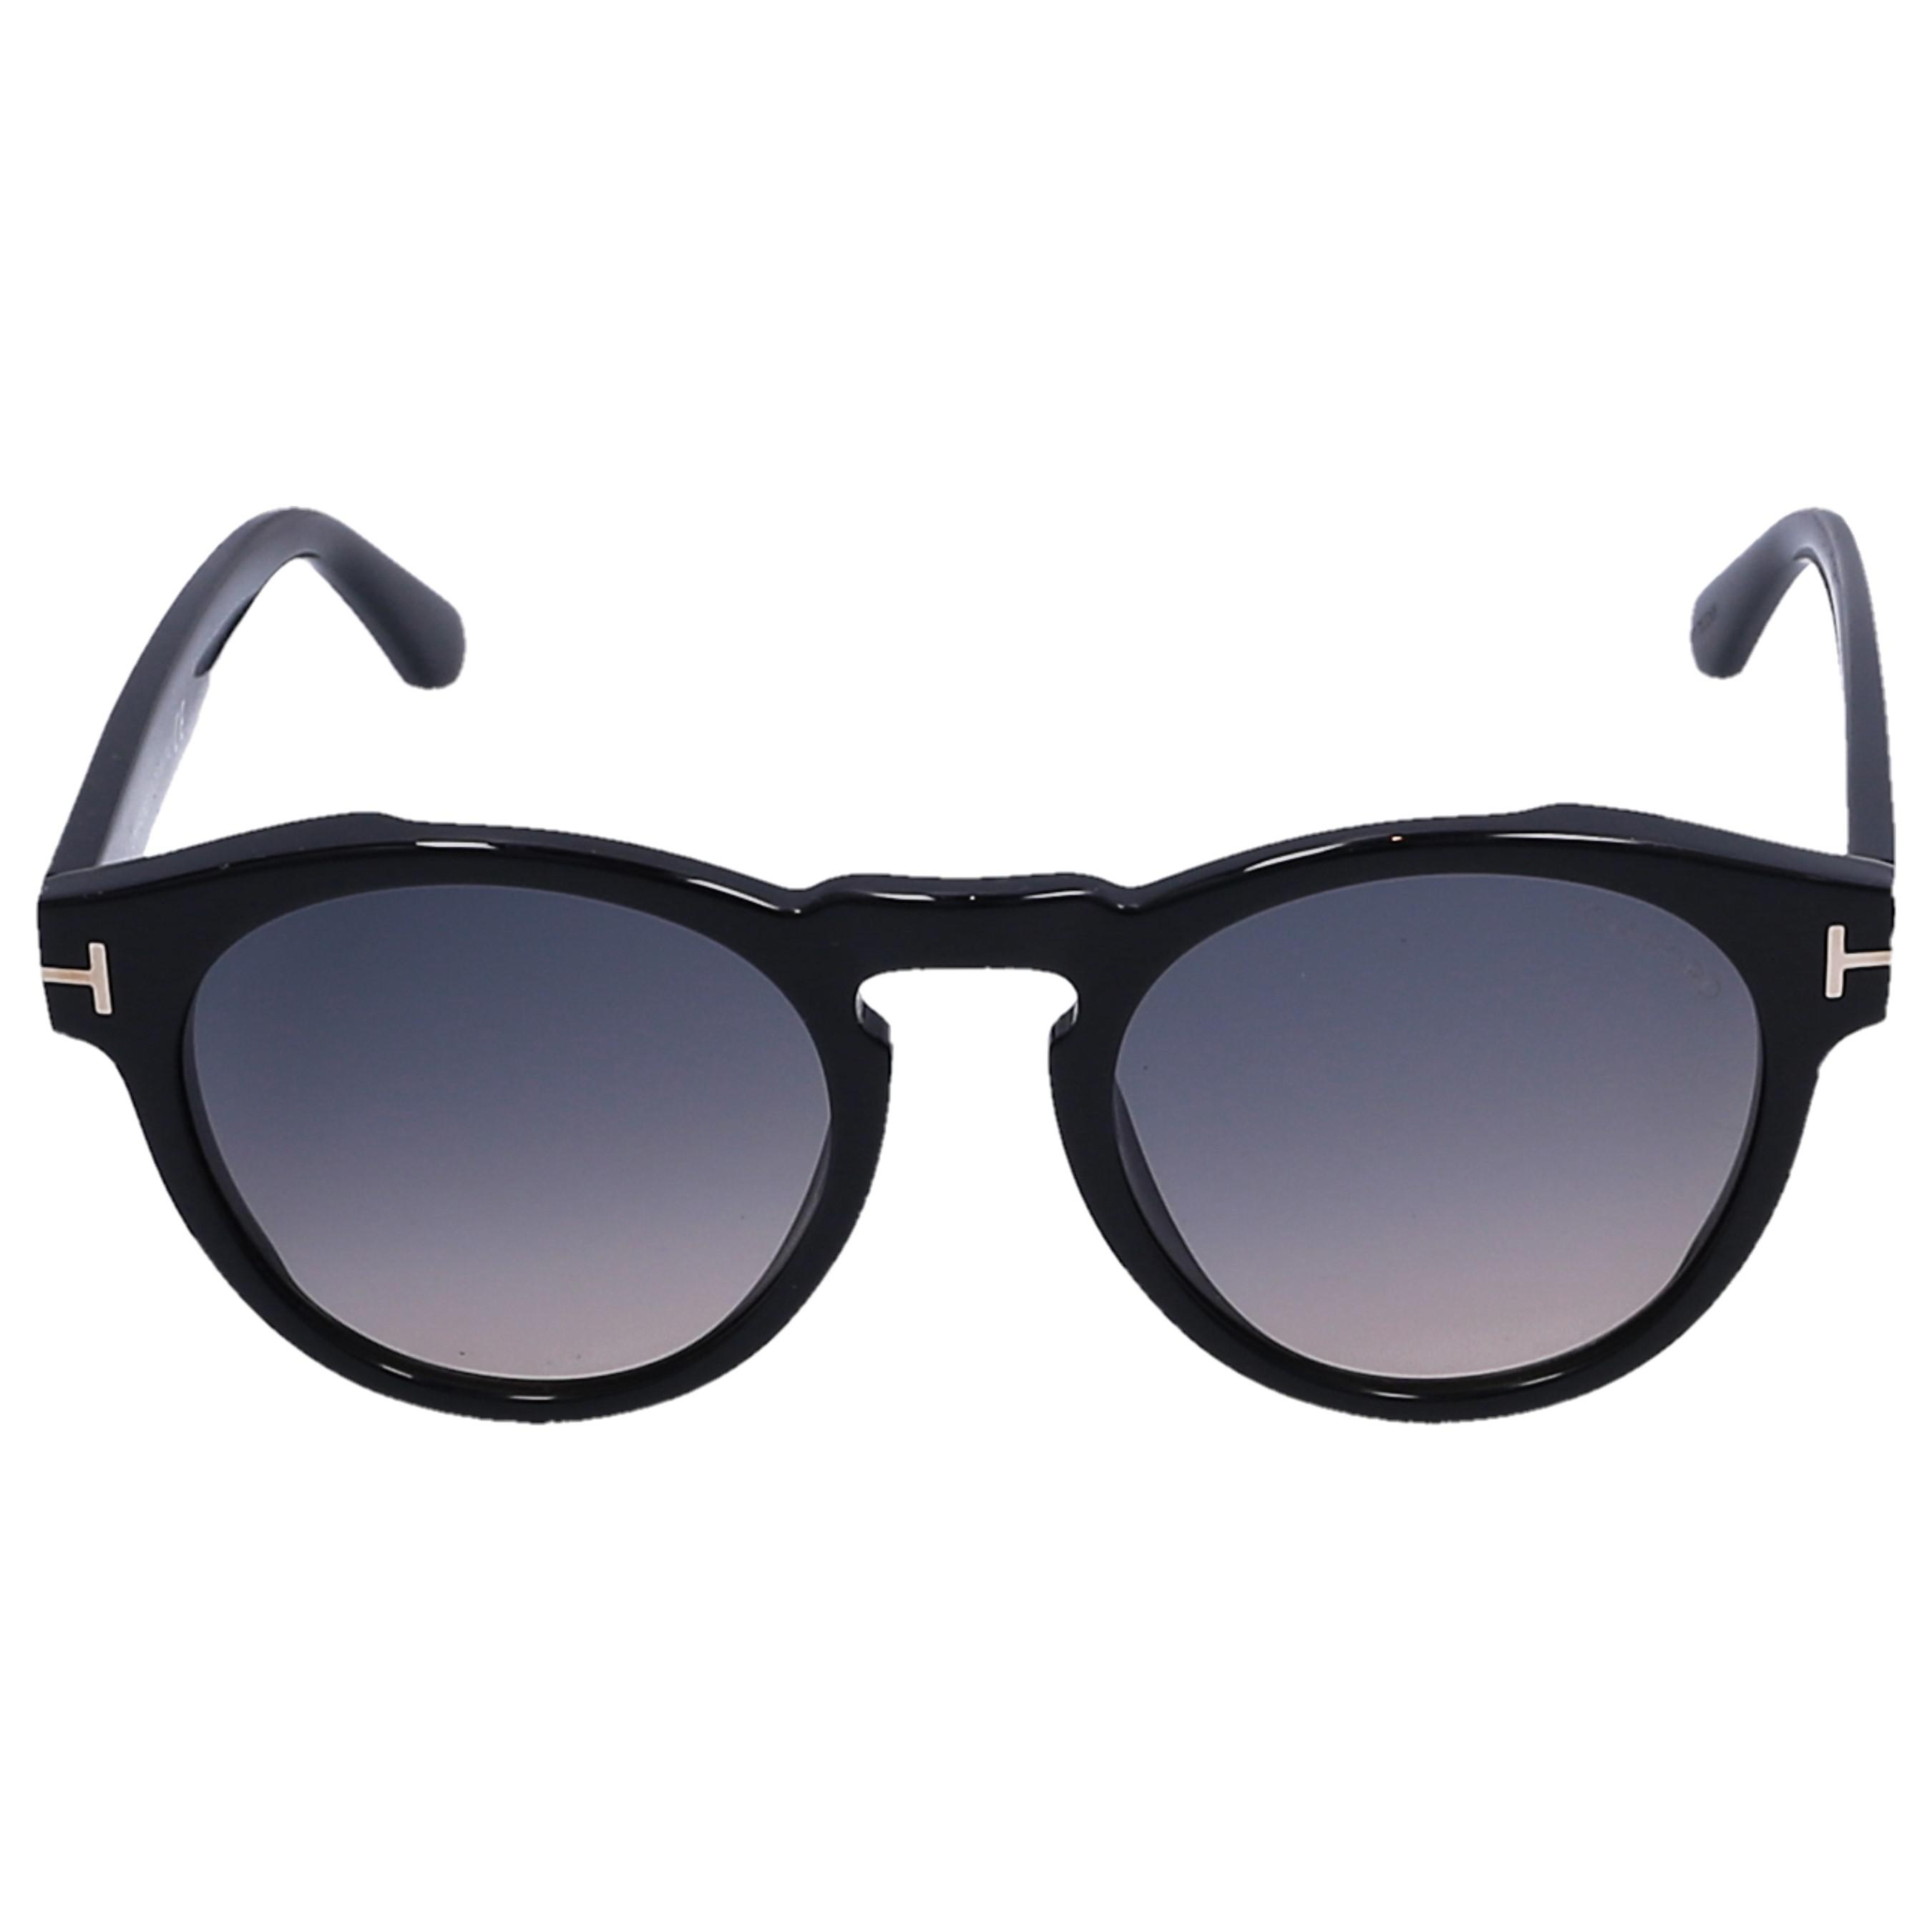 c10e45ba8f Lyst - Tom Ford Sunglasses Round 615 Acetate Black in Blue